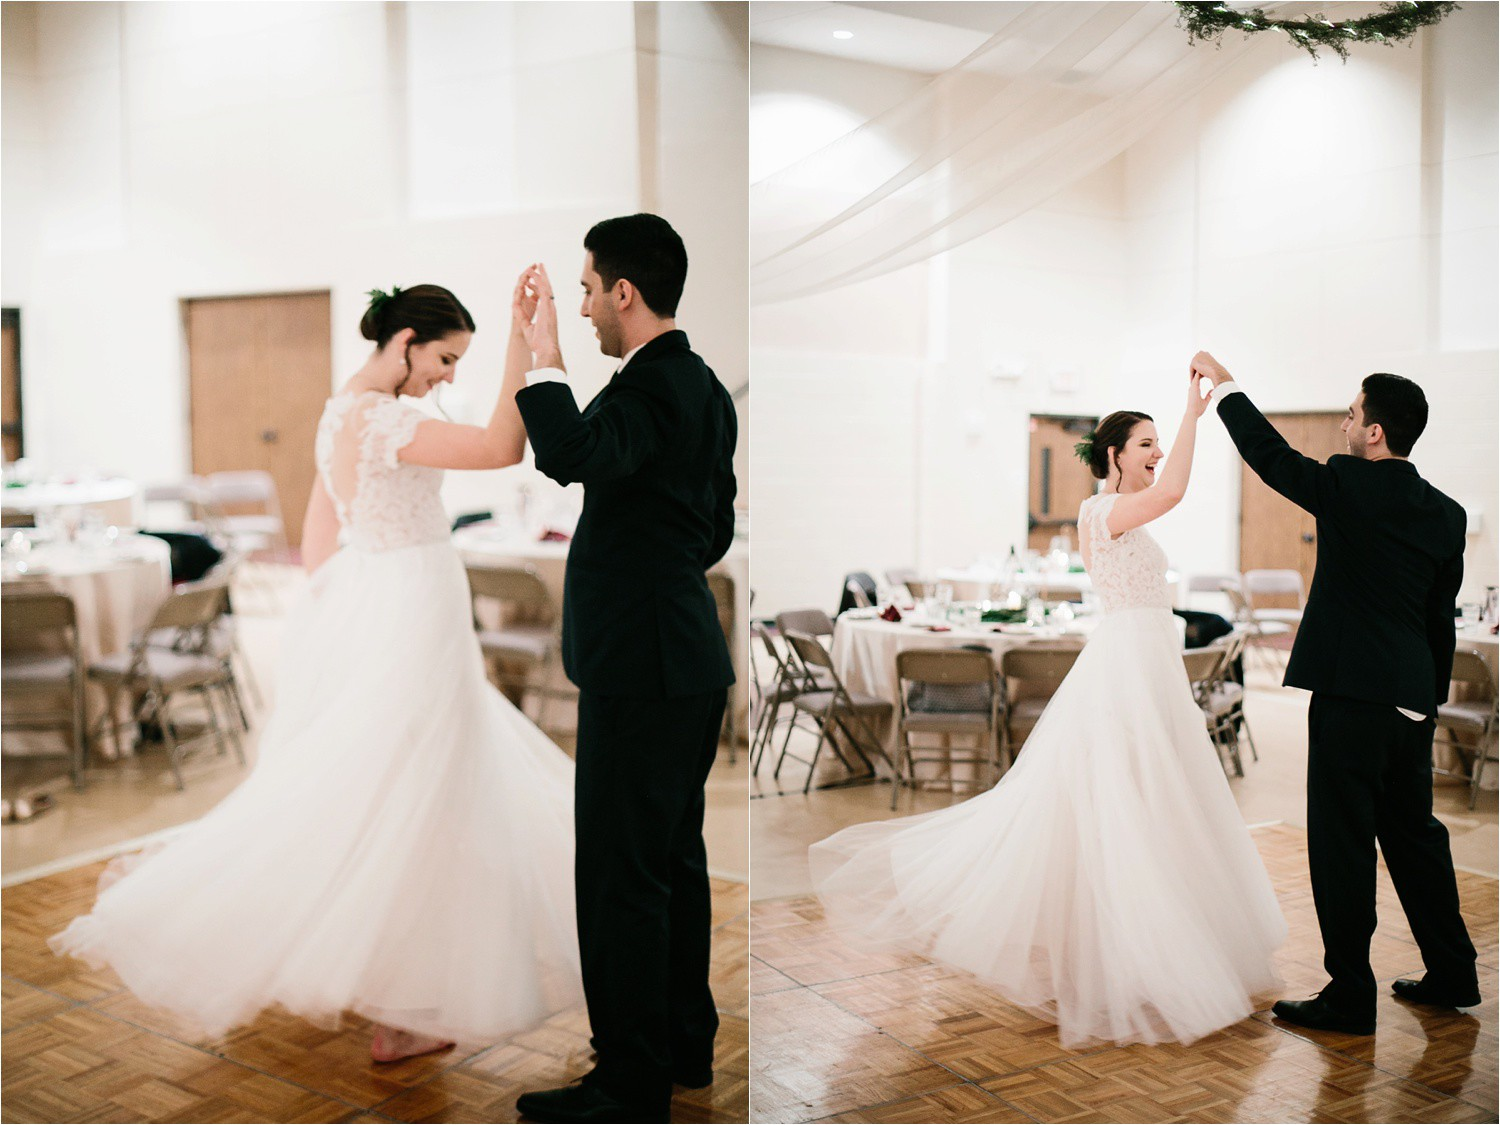 Alaina + Josh __ a wintertime wedding in Houston, TX with Christmas accents and a BHLDN dress by North Texas Wedding Photographer Rachel Meagan Photography _ 91